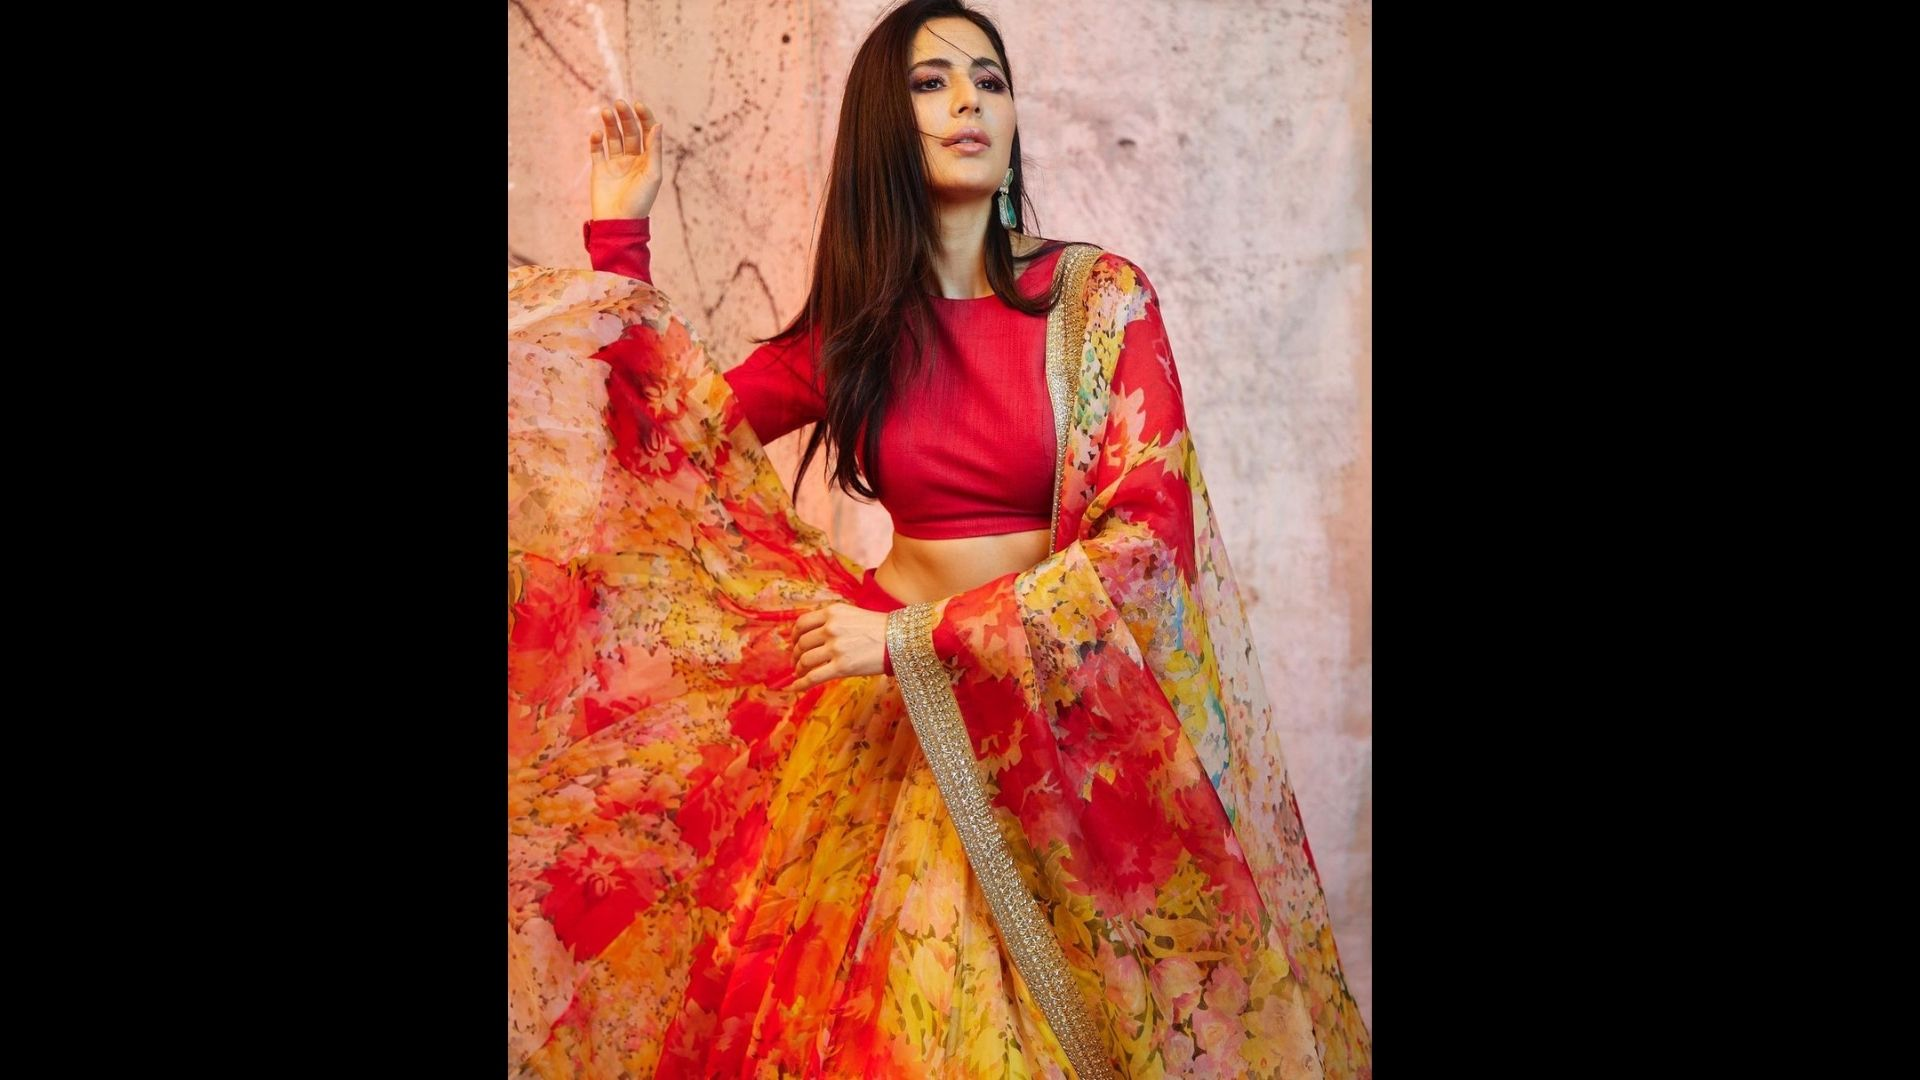 Dussehra 2021: Katrina Kaif Shares Stunning Outfit Images As She Wishes Her Fans On Vijay Dashmi And Begins Her 'Sooryavanshi Journey'